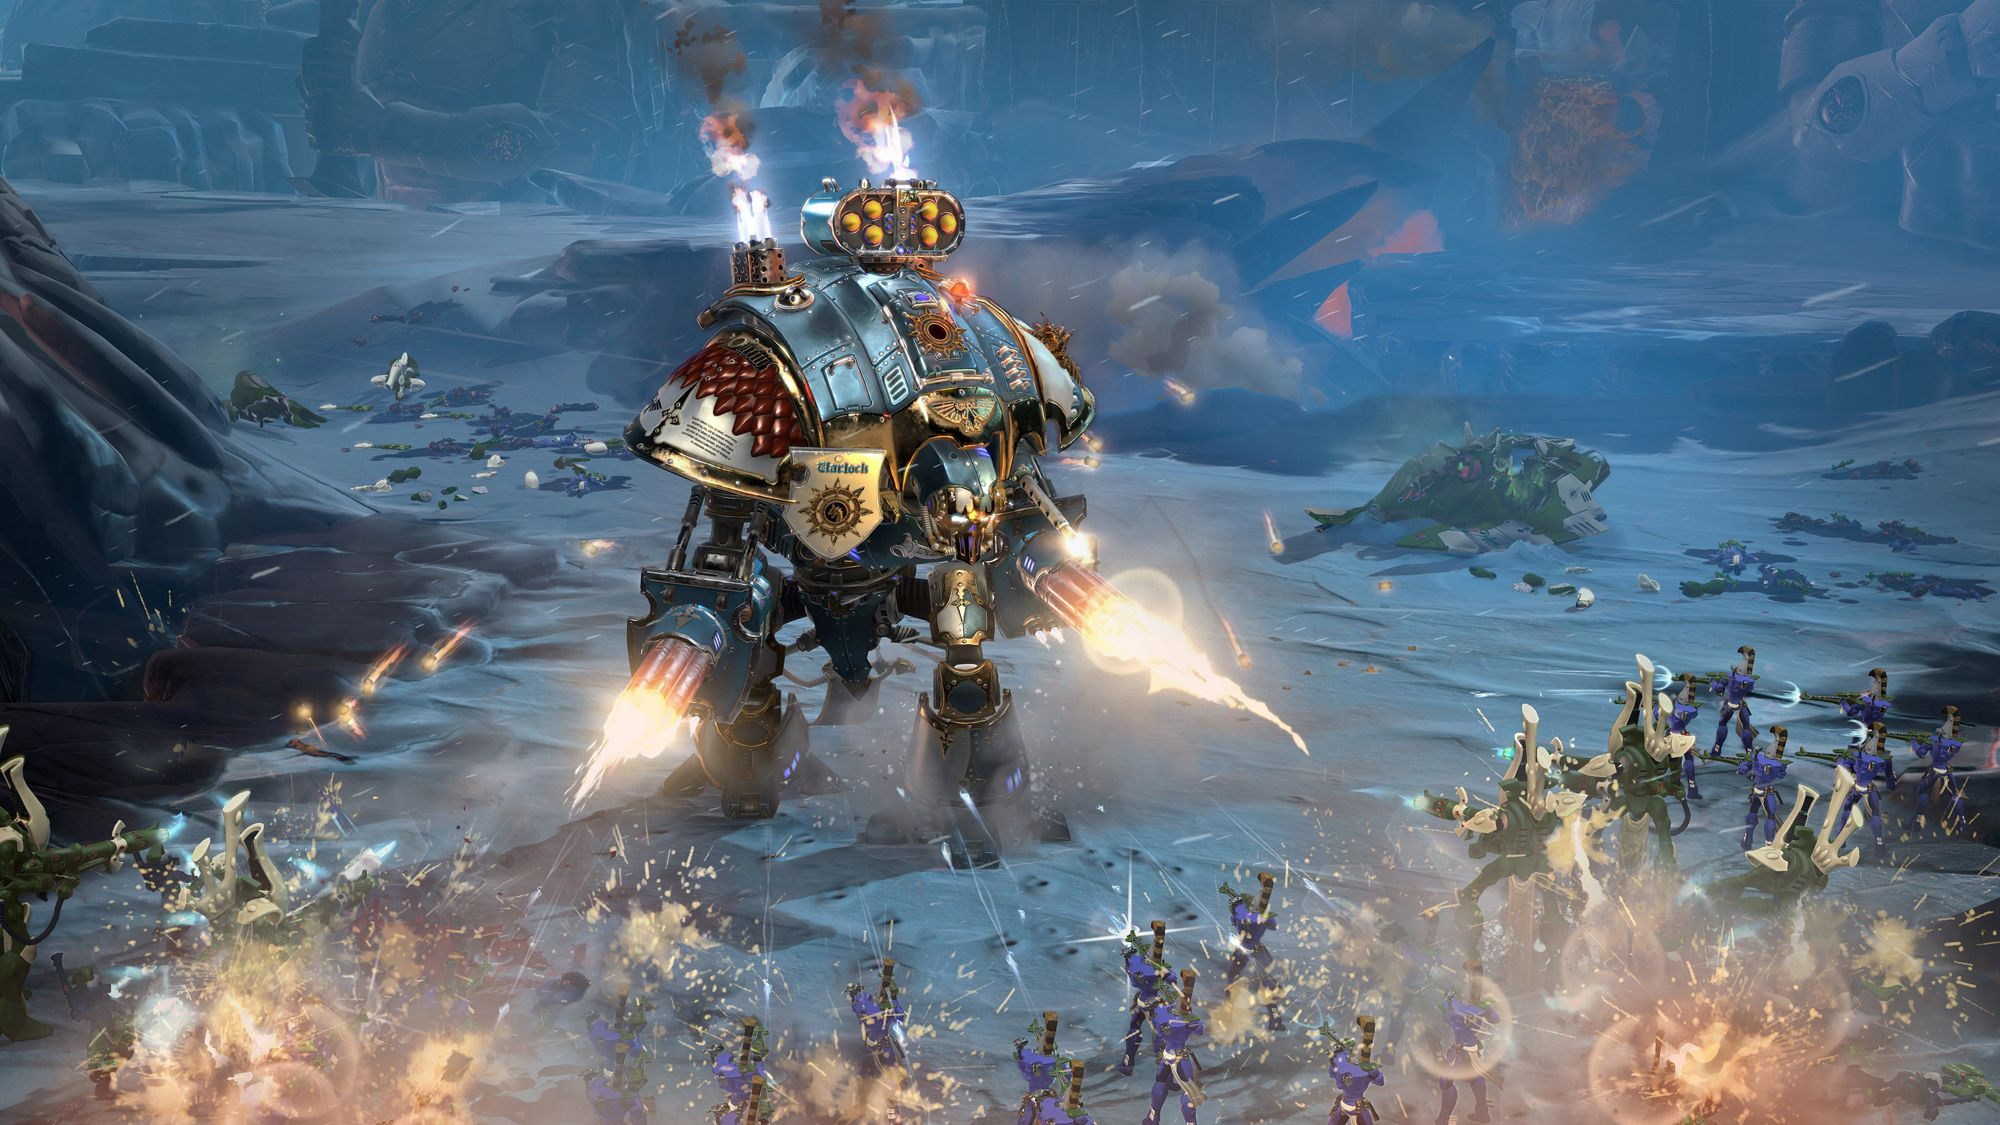 Review: Warhammer 40,000: Dawn of War III - Slant Magazine